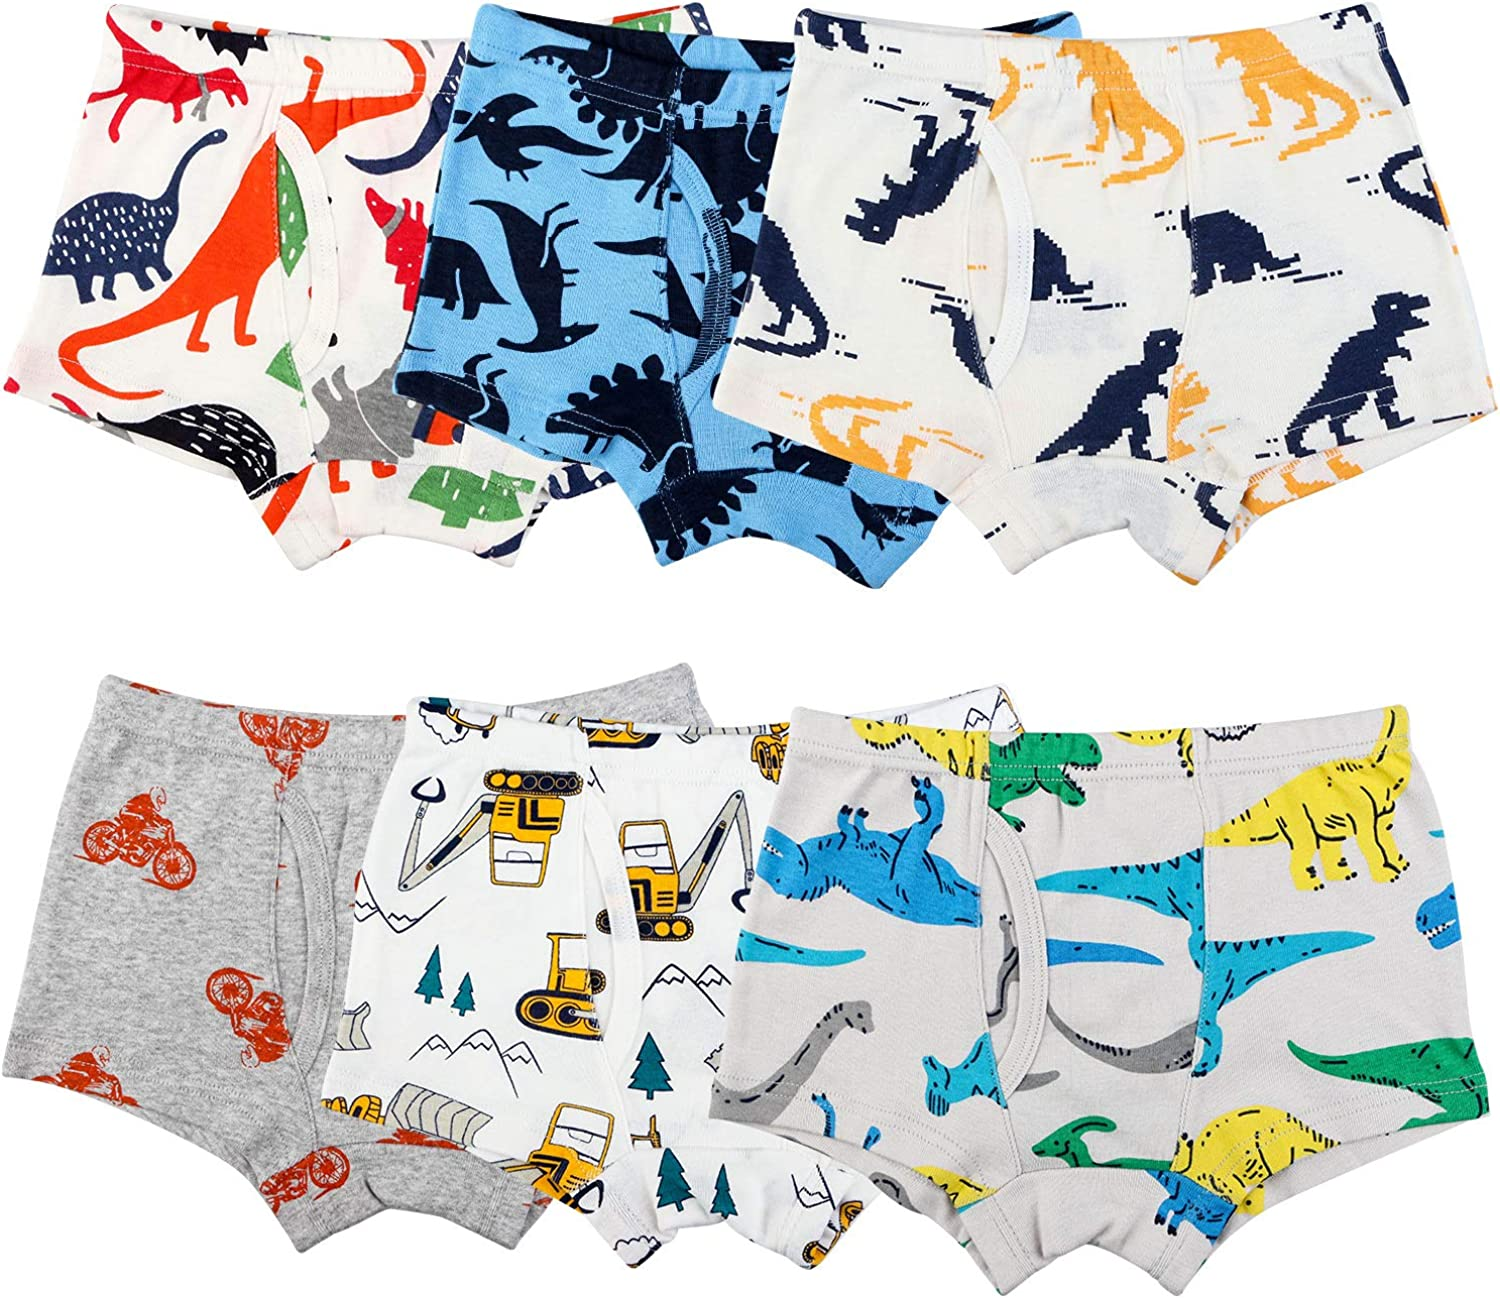 Auranso Toddler Boys Cotton Boxer Briefs Underwear Dinosaur Car 6 Pack 2-11Y